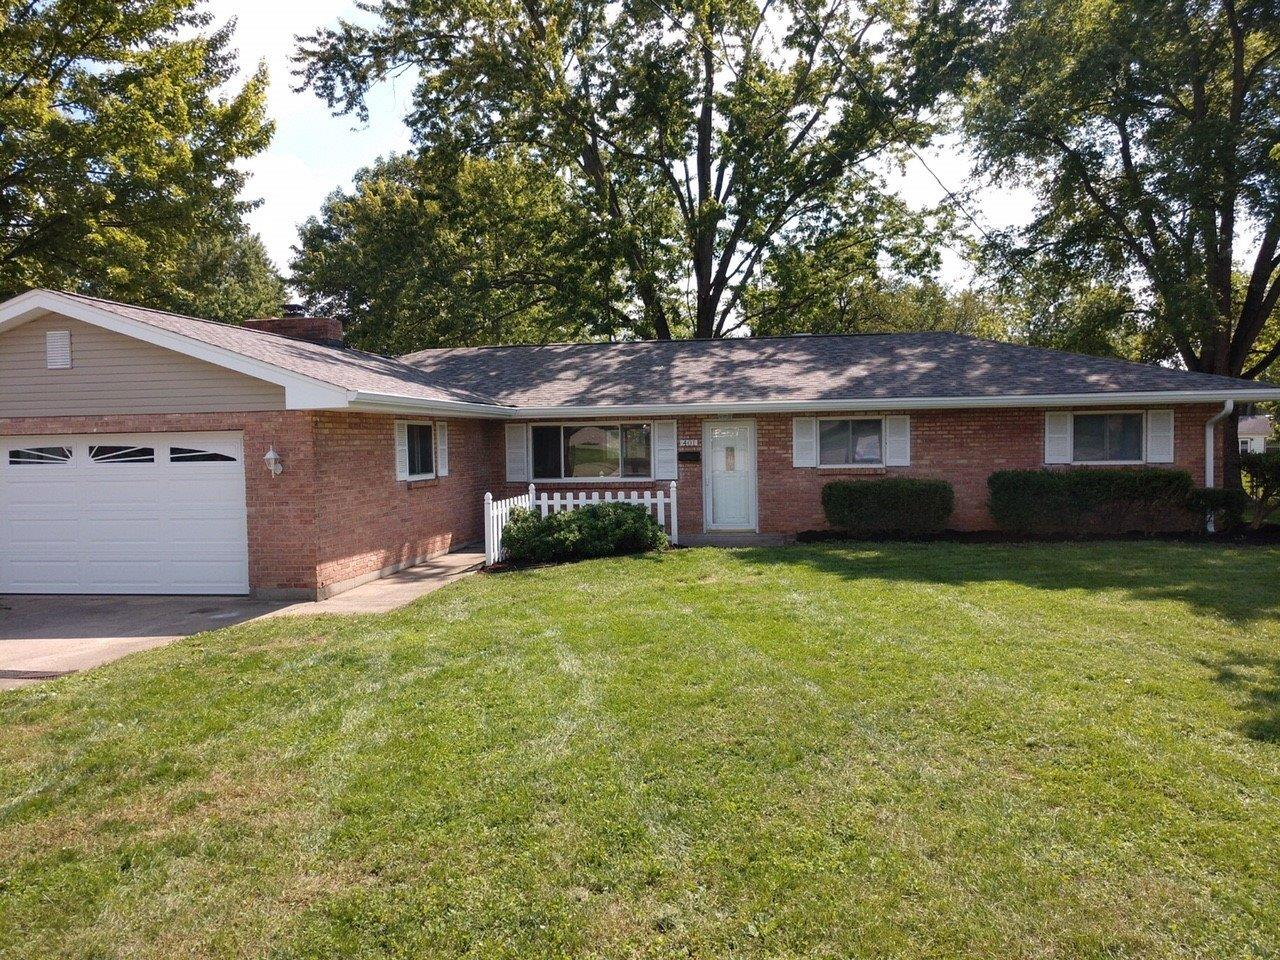 401 Kerry St Trenton Oh 45067 Listing Details Mls